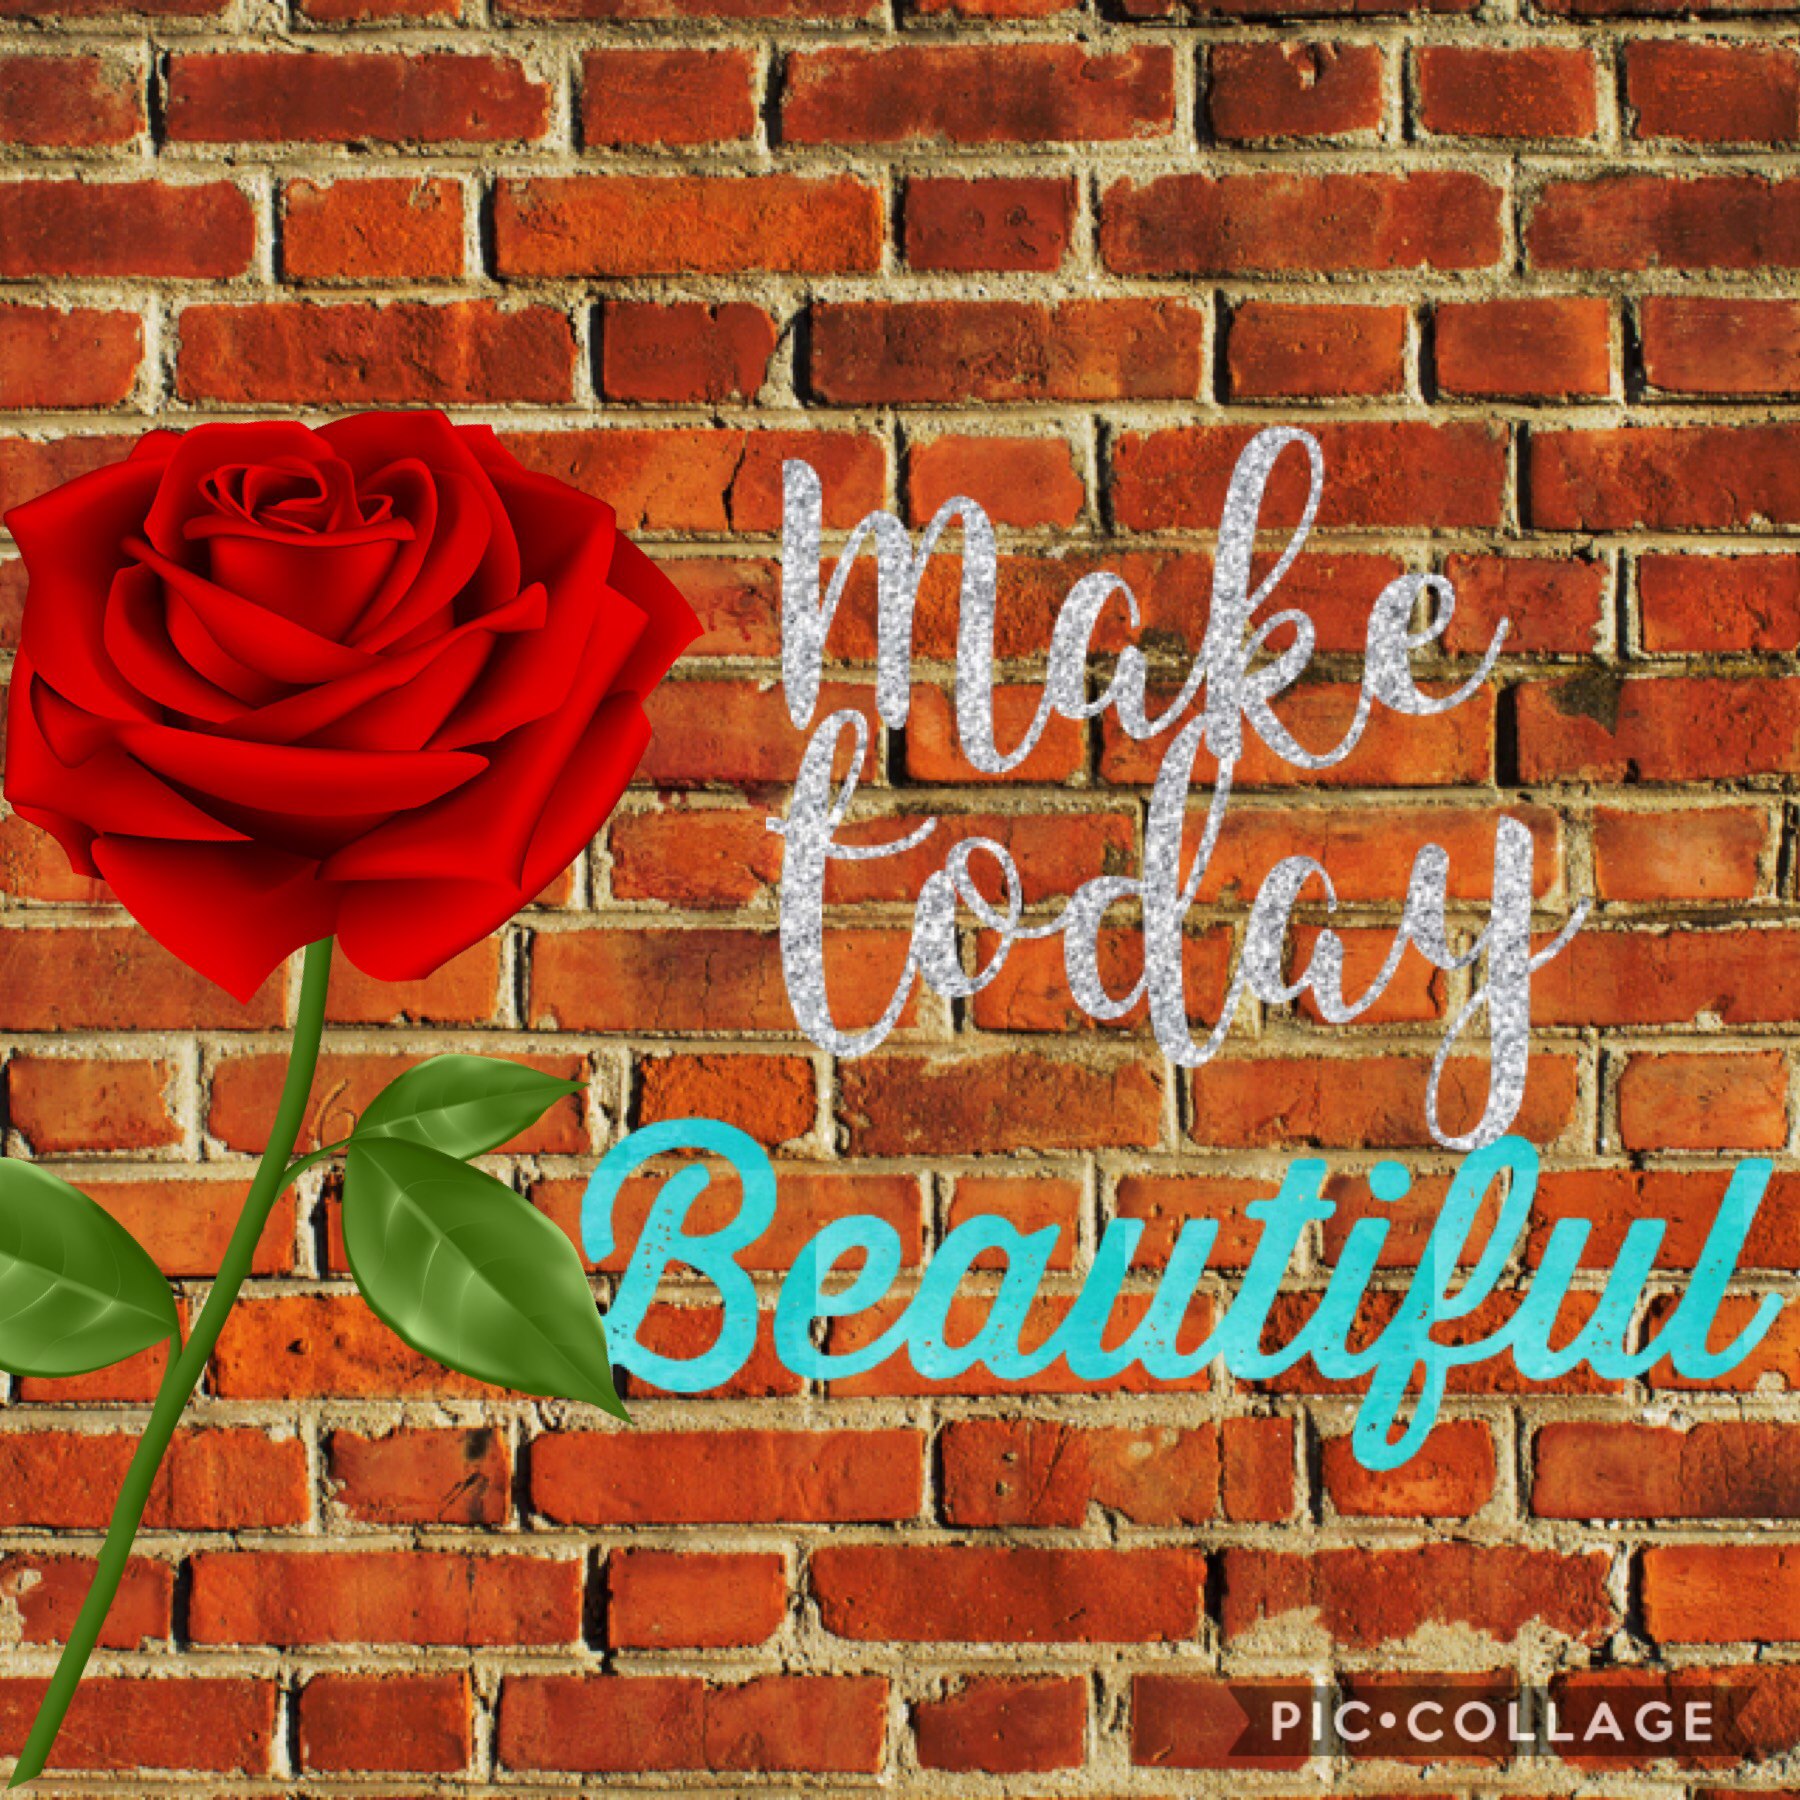 Make today beautiful!